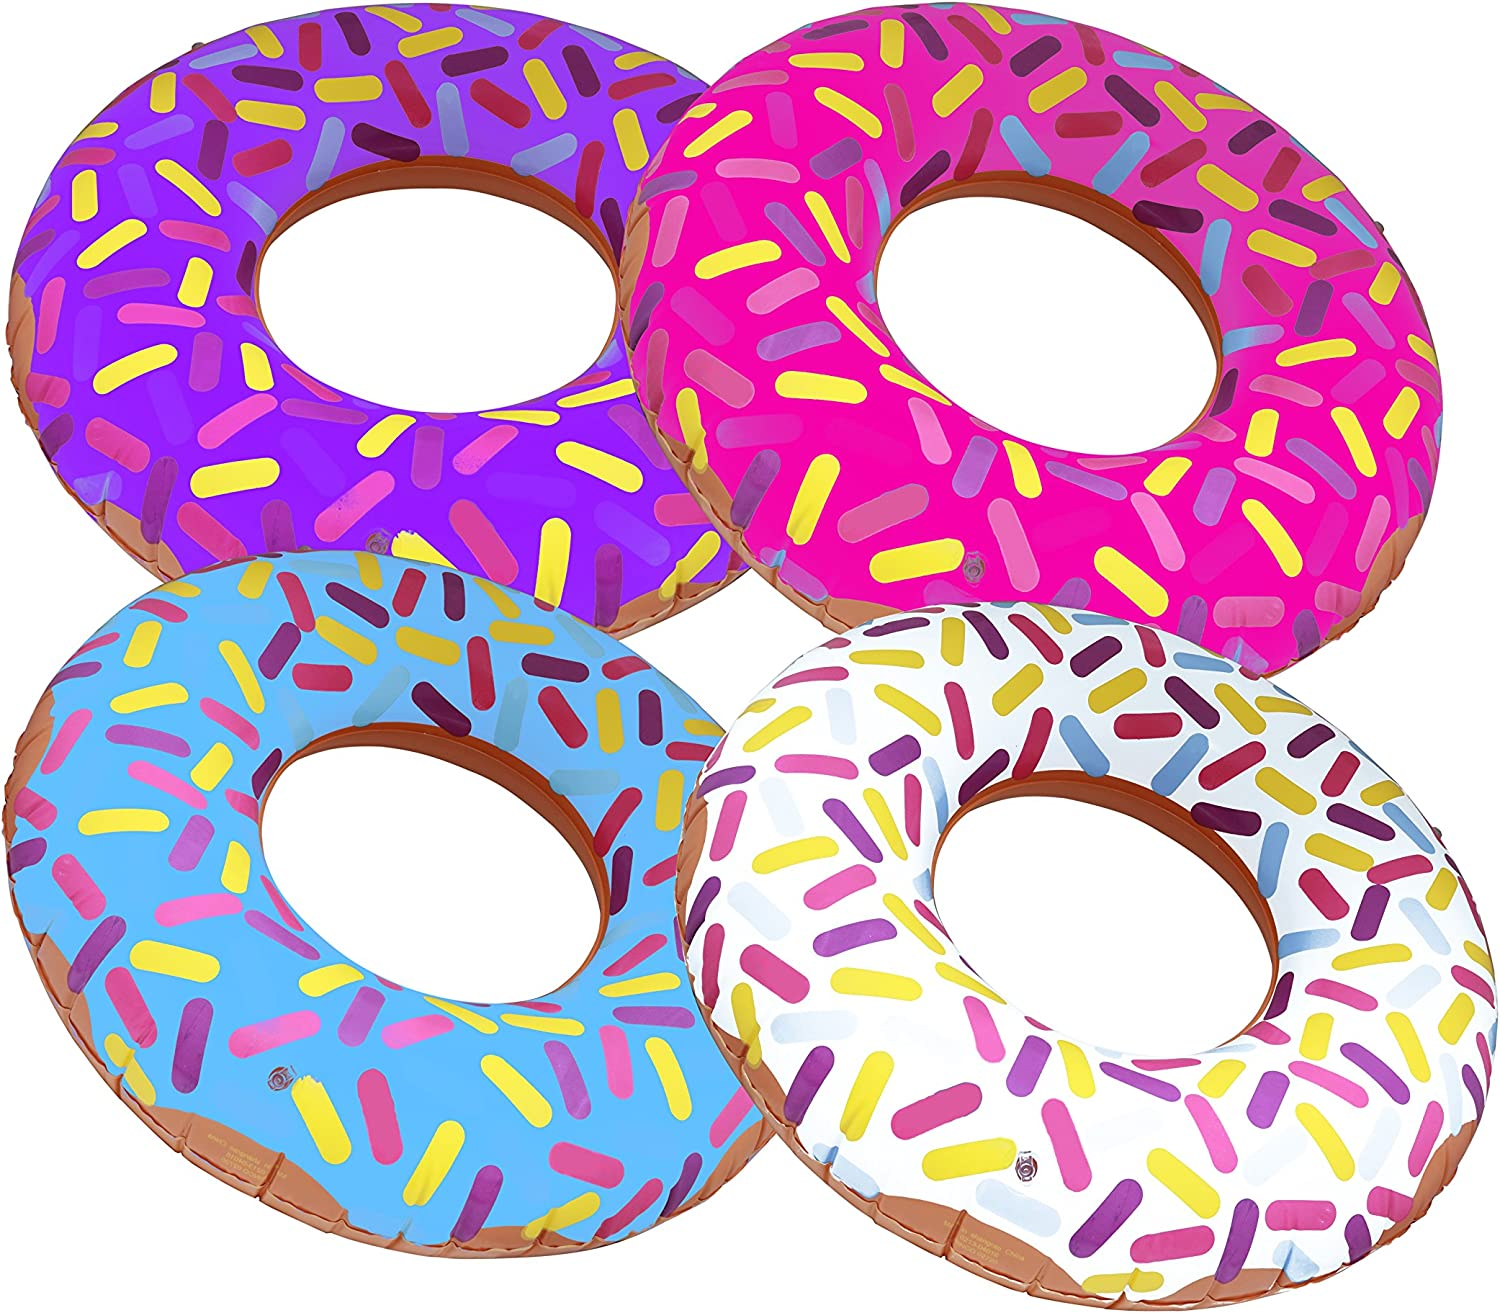 "Inflatable Donuts 24"" - Pack of 4 Delicious Looking Sprinkle Donut Inflatables"